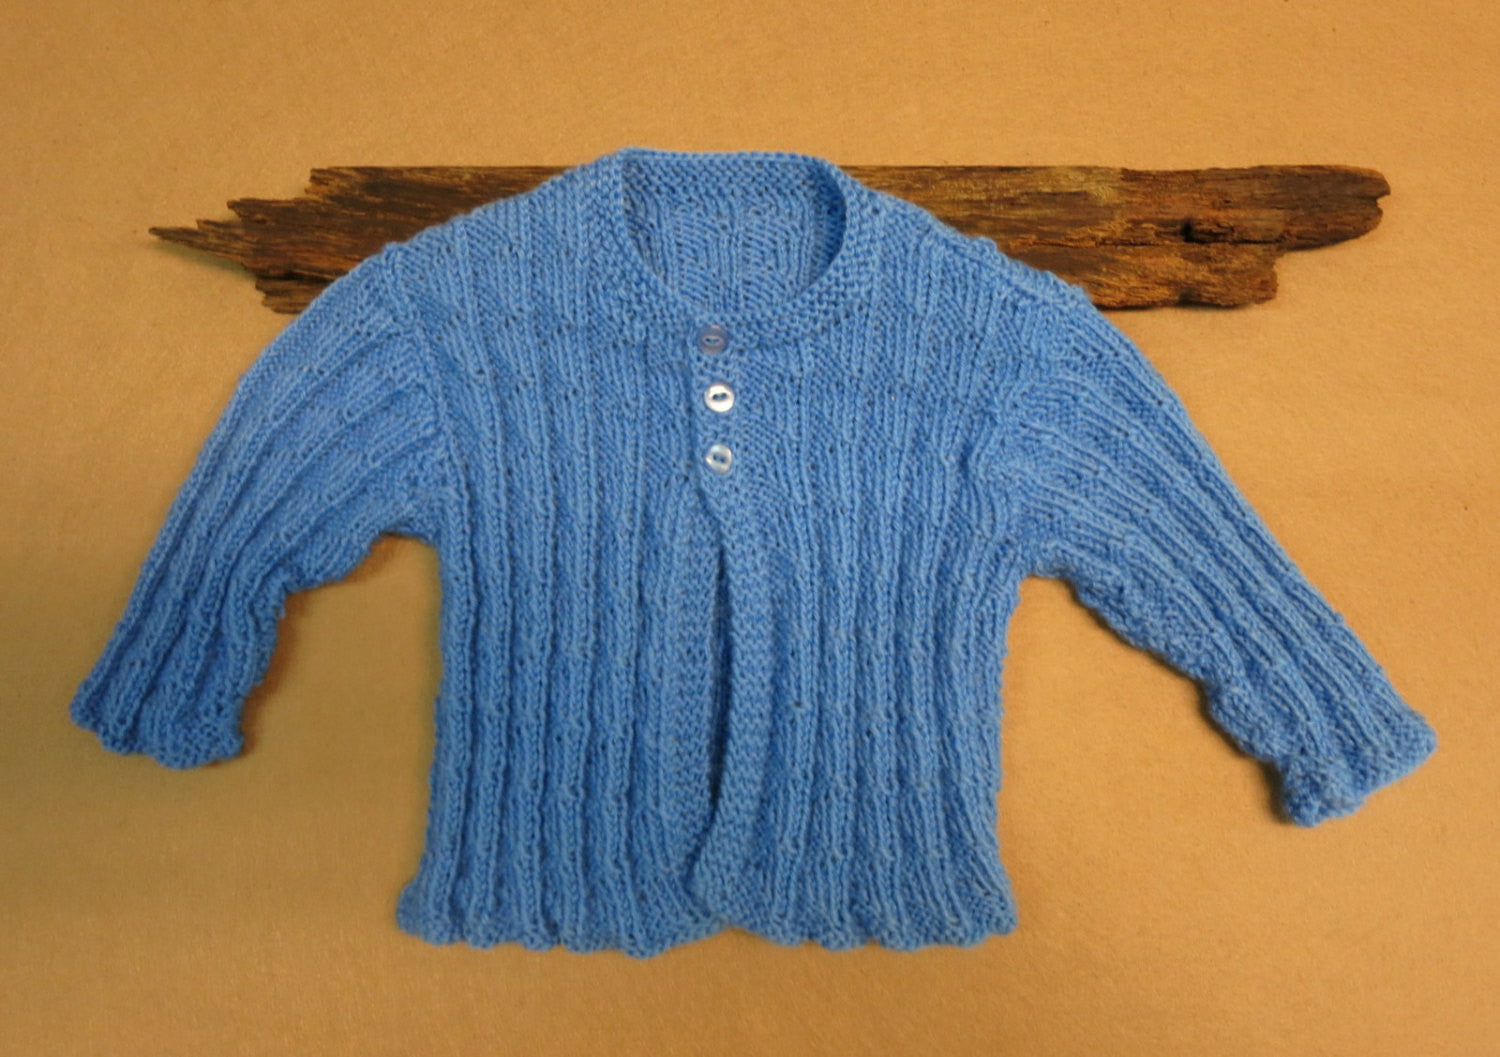 Pattern-Baby-Cardigan-Hand-Knitted-Nchanted-Gifts